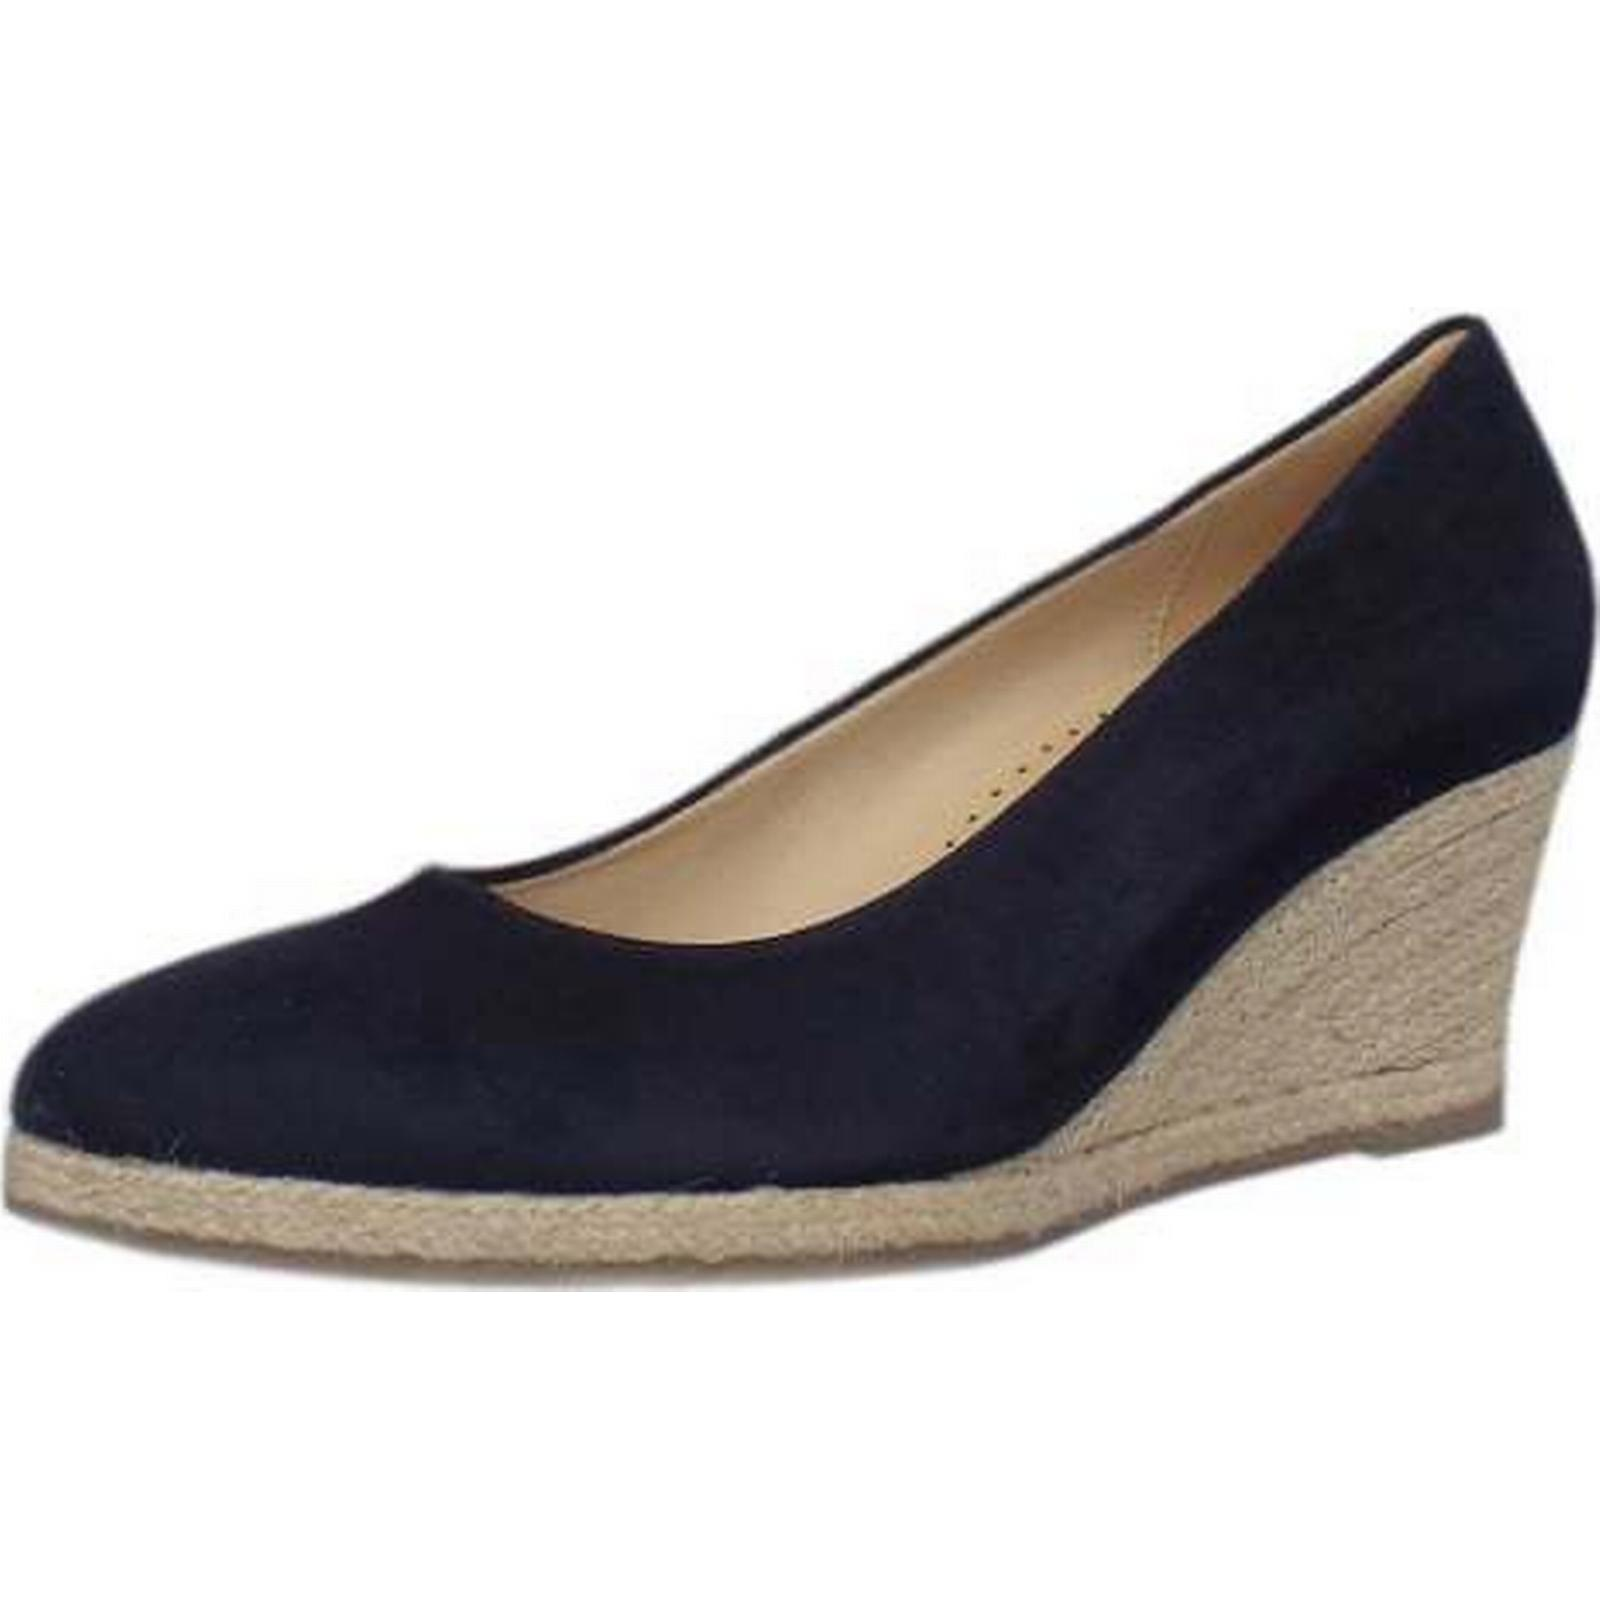 Gabor PAISLEY GABOR LADIES SUMMER WEDGE SHOE Size: Size: SHOE 3, Colour: NAVY e890e2